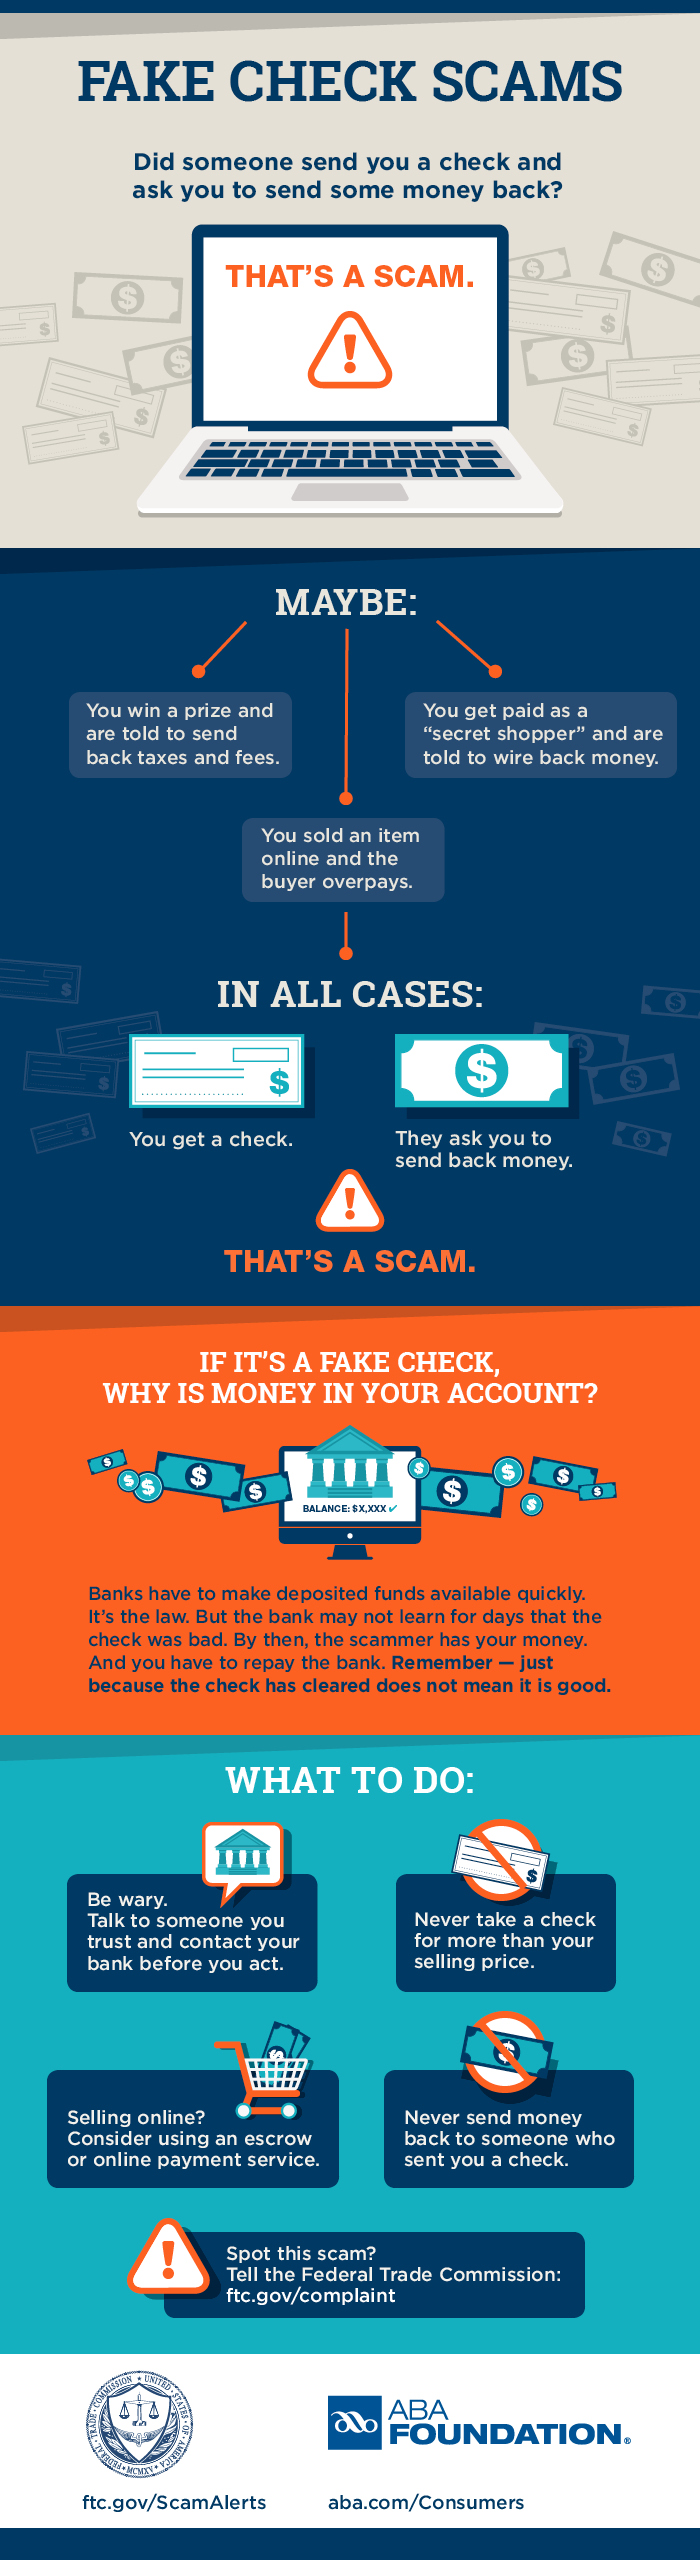 Infographic on Fake Check Scams